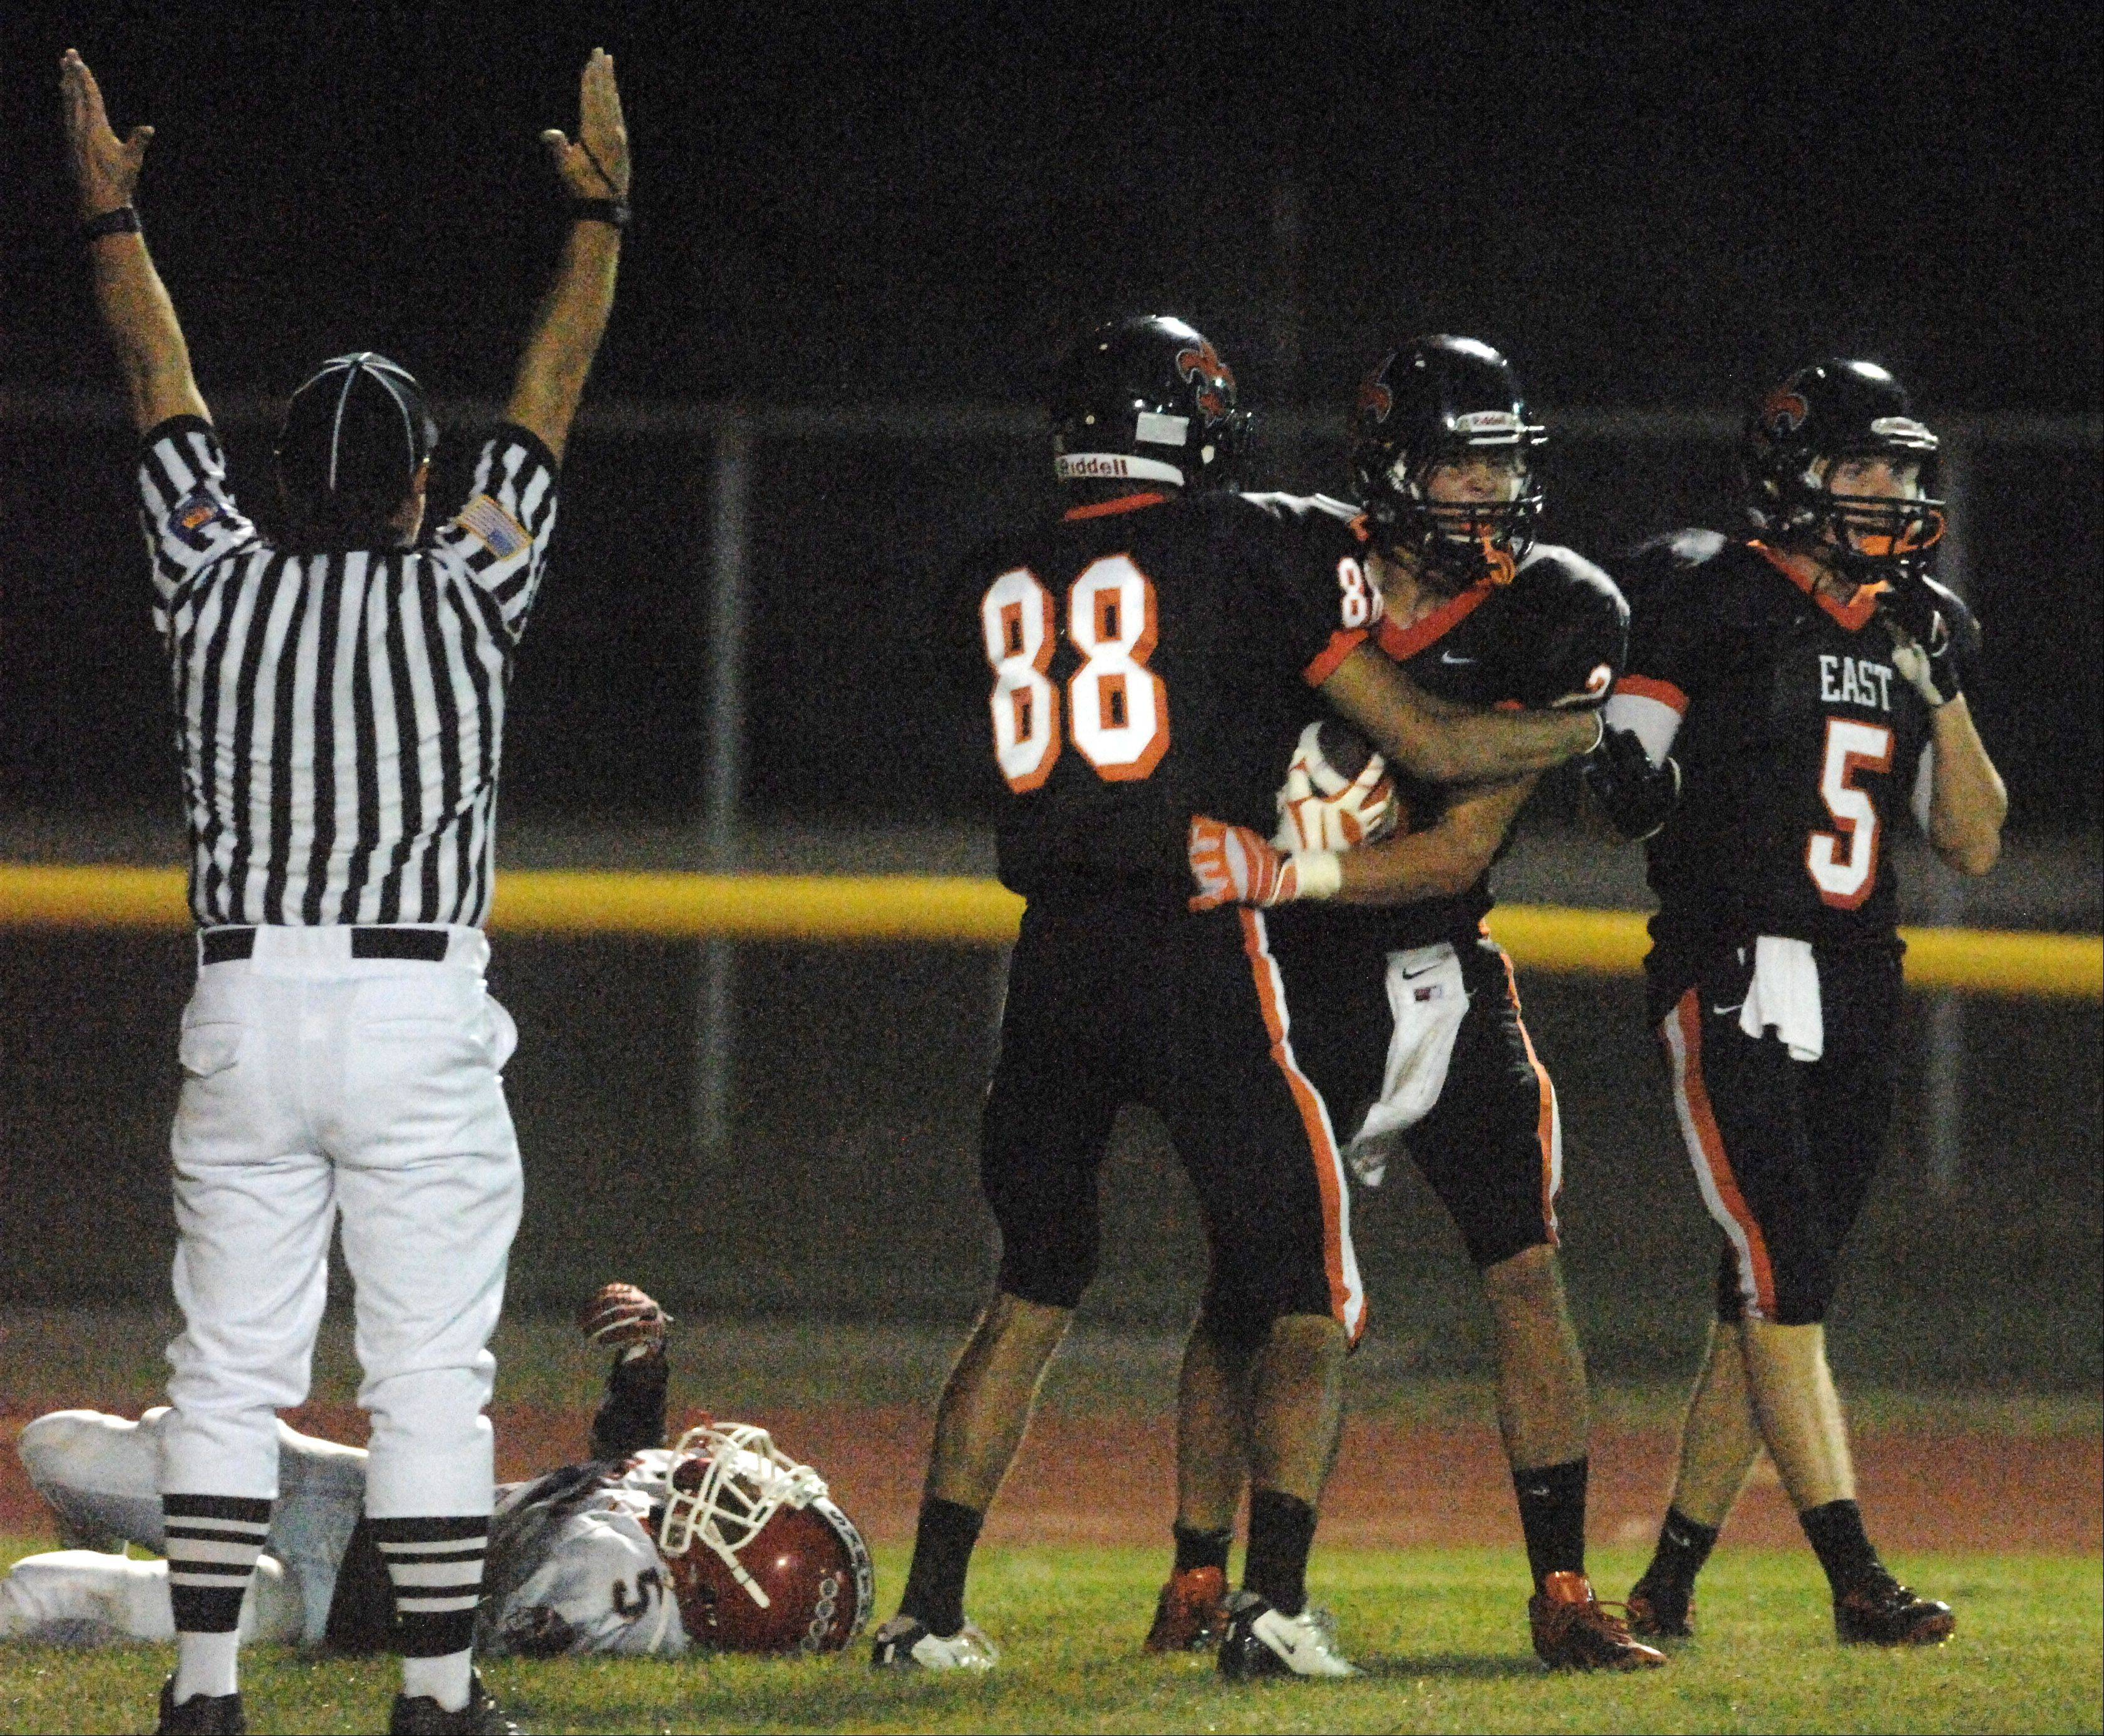 St. Charles East teammates congratulate Barry Brannon, center, after his third quarter touchdown catch against West Aurora during Friday's game in St. Charles.